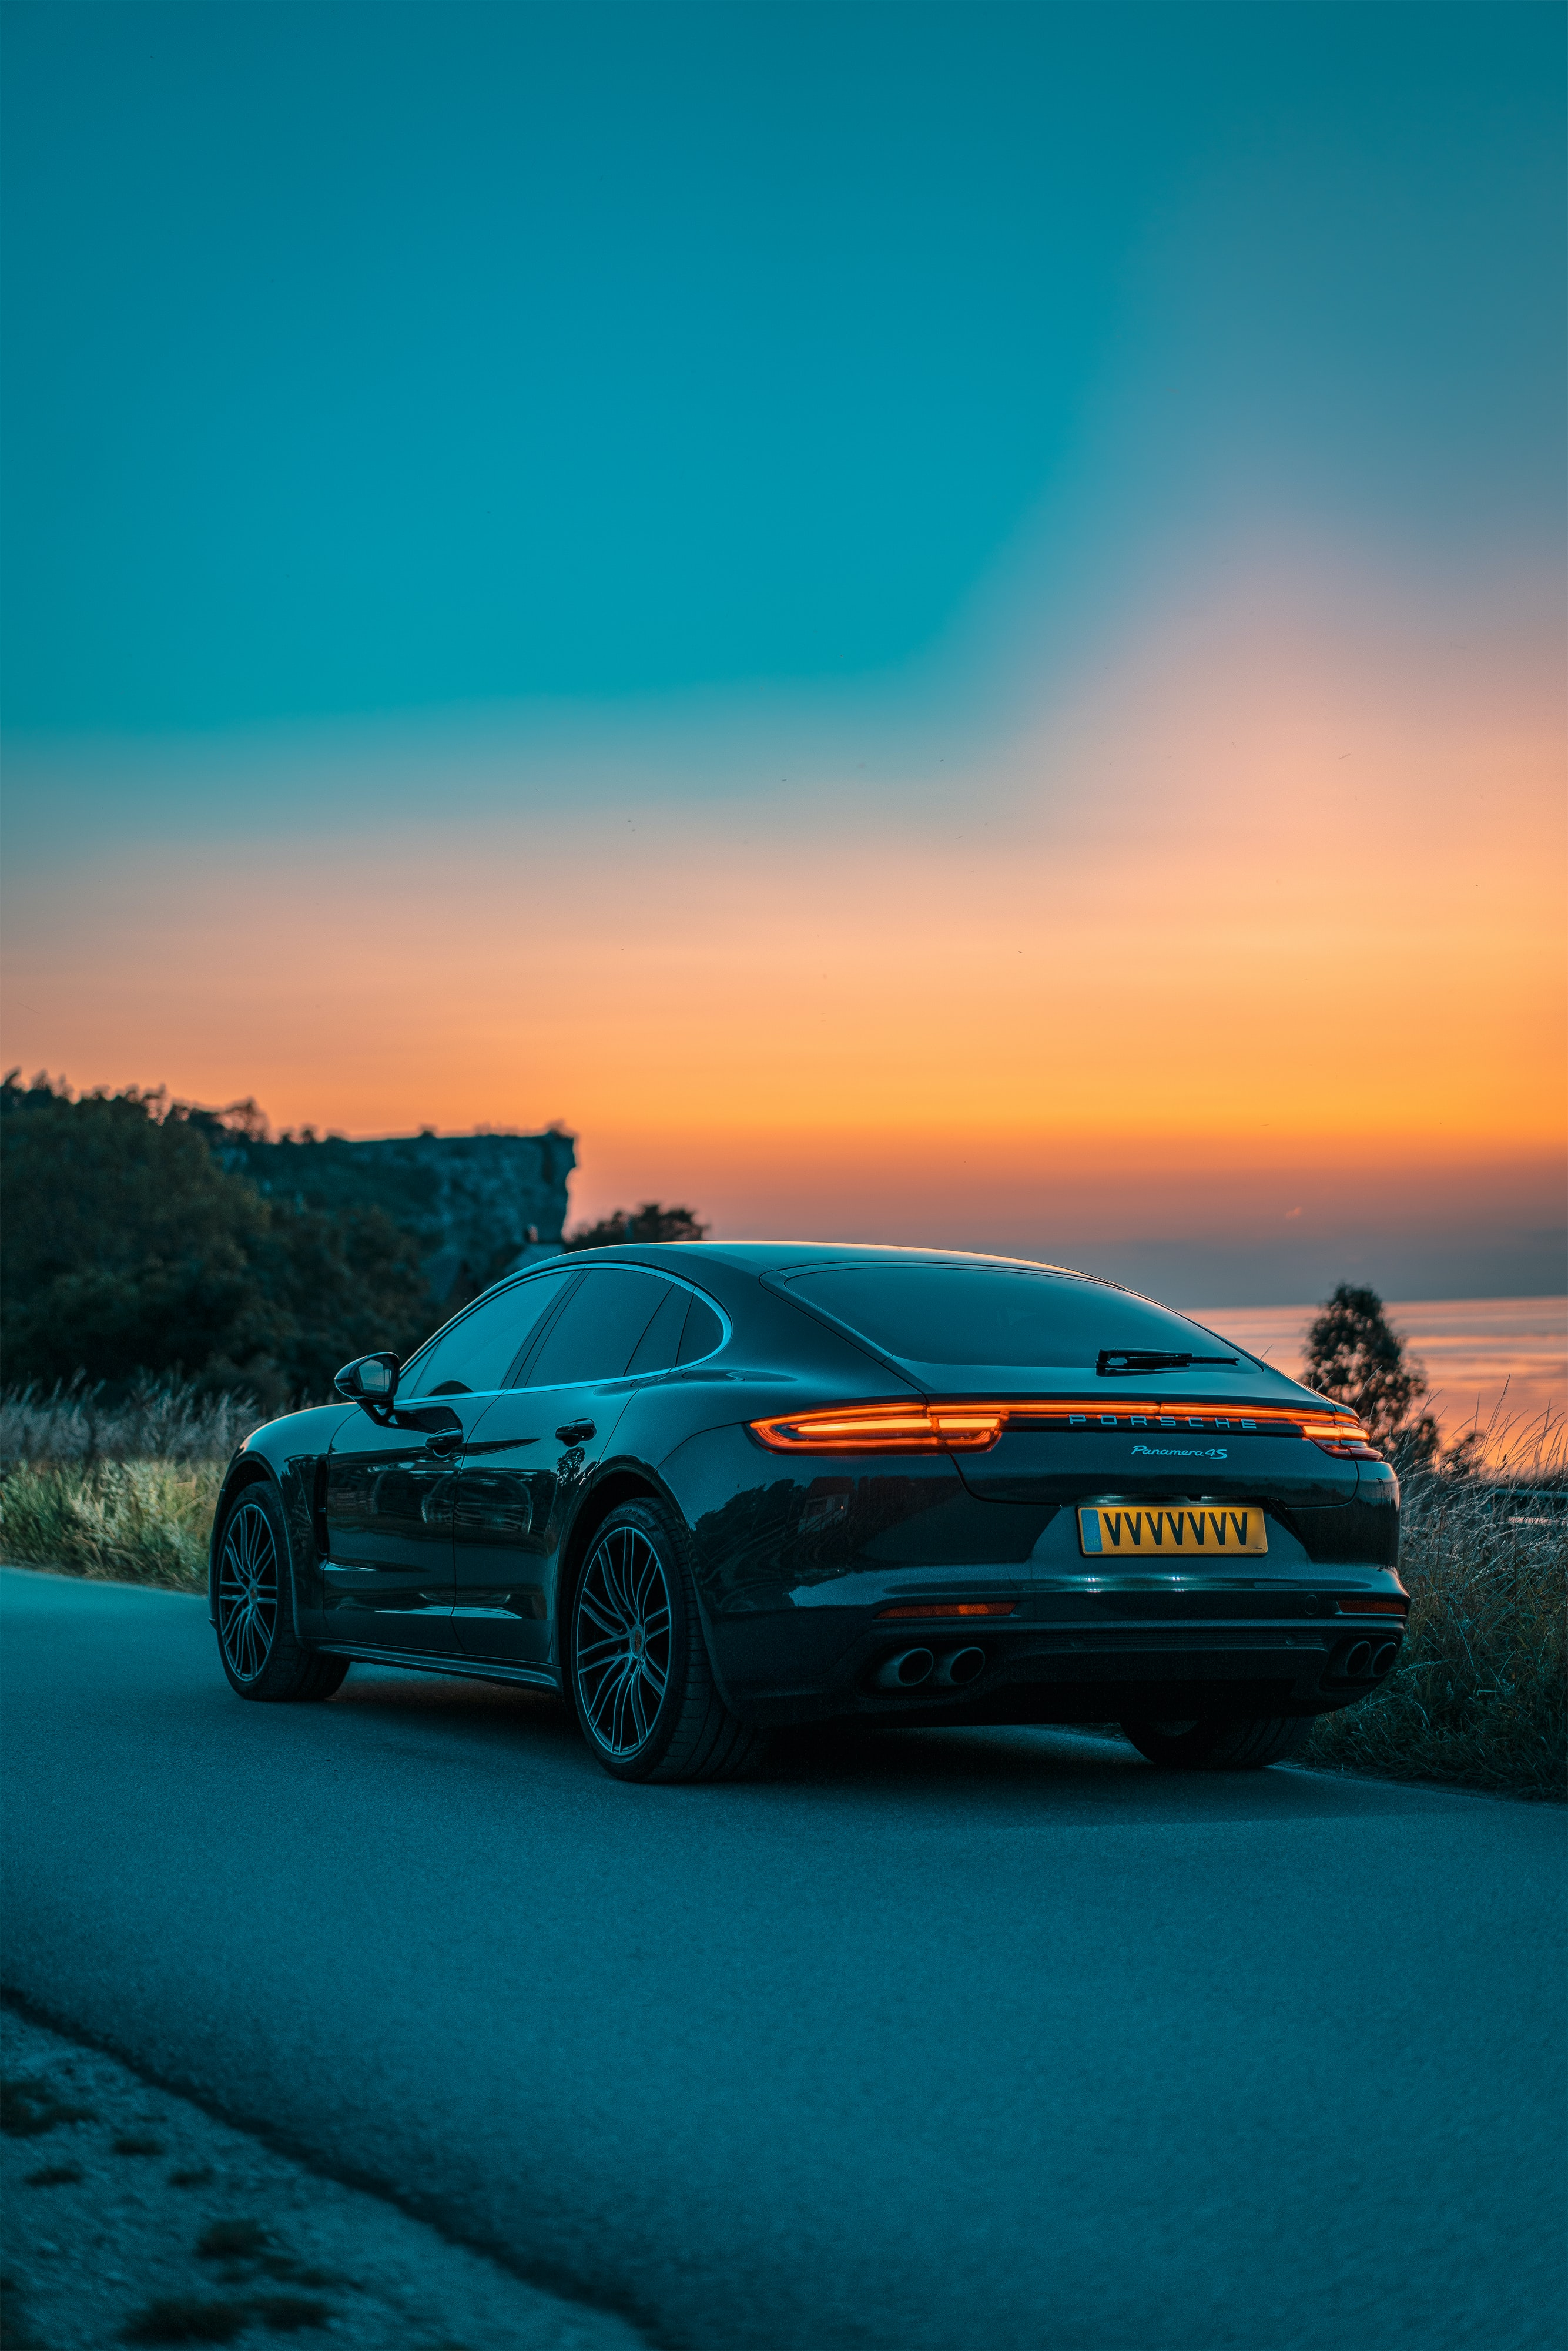 750 Luxury Car Pictures Hd Download Free Images Stock Photos On Unsplash